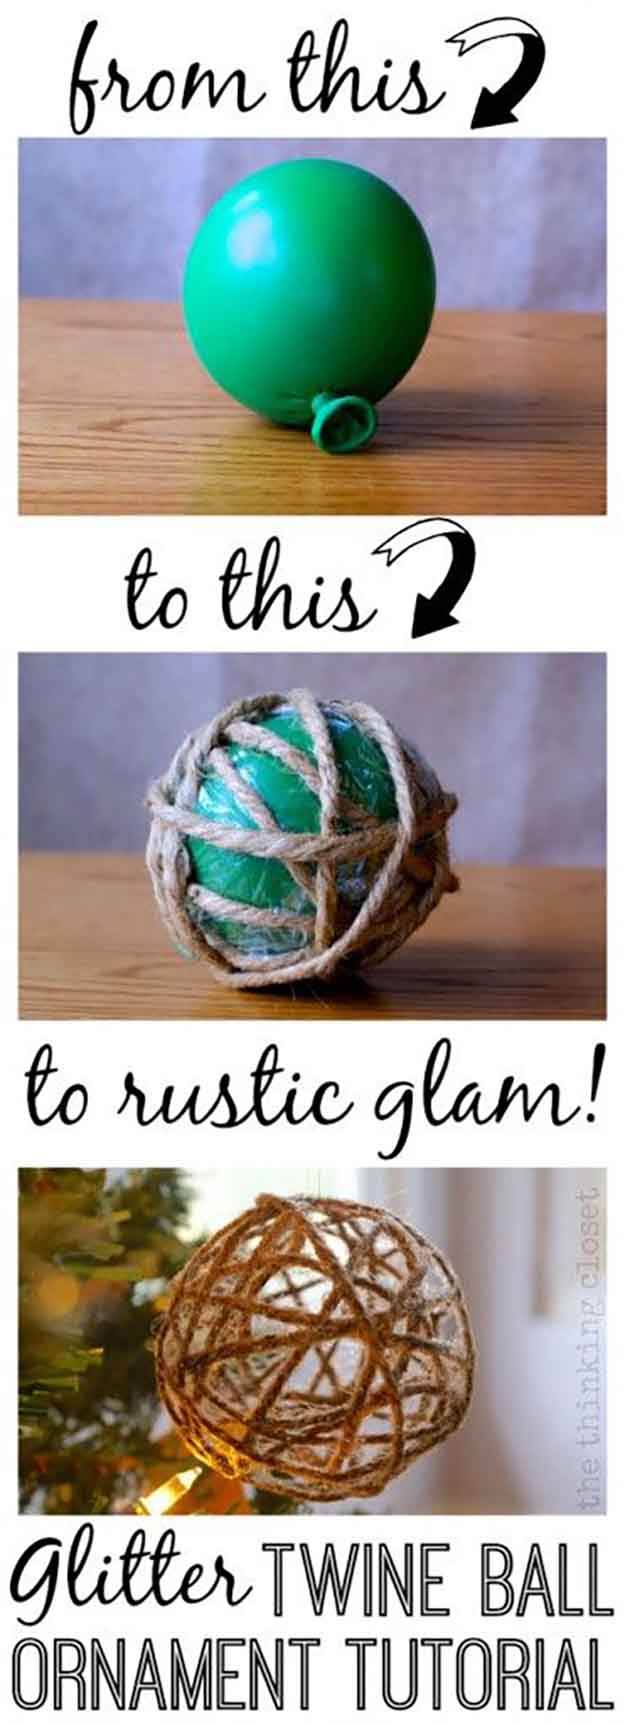 DIY Glitter Twine Ball Ornament Tutorial | 27 Spectacularly Easy DIY Christmas Tre